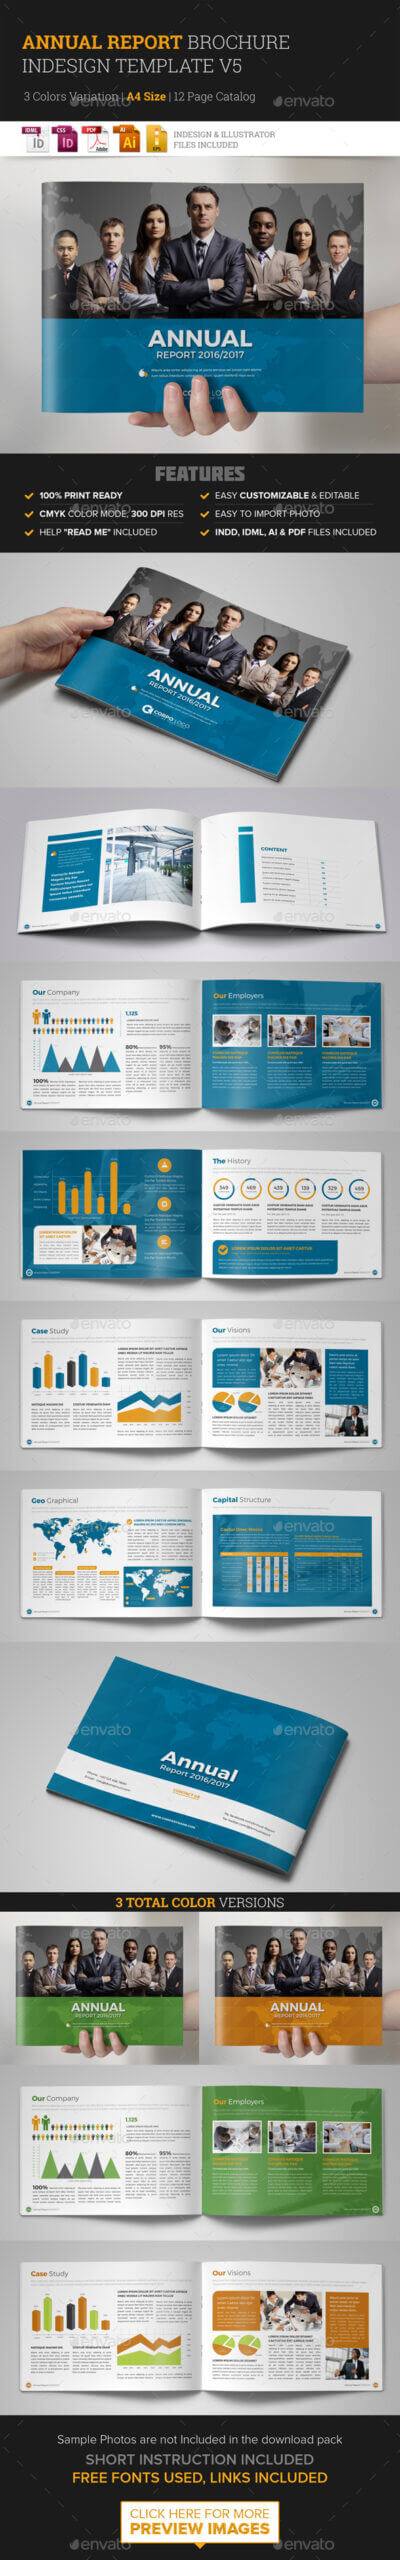 Annual Report Template Indesign Graphics, Designs & Templates With Free Indesign Report Templates